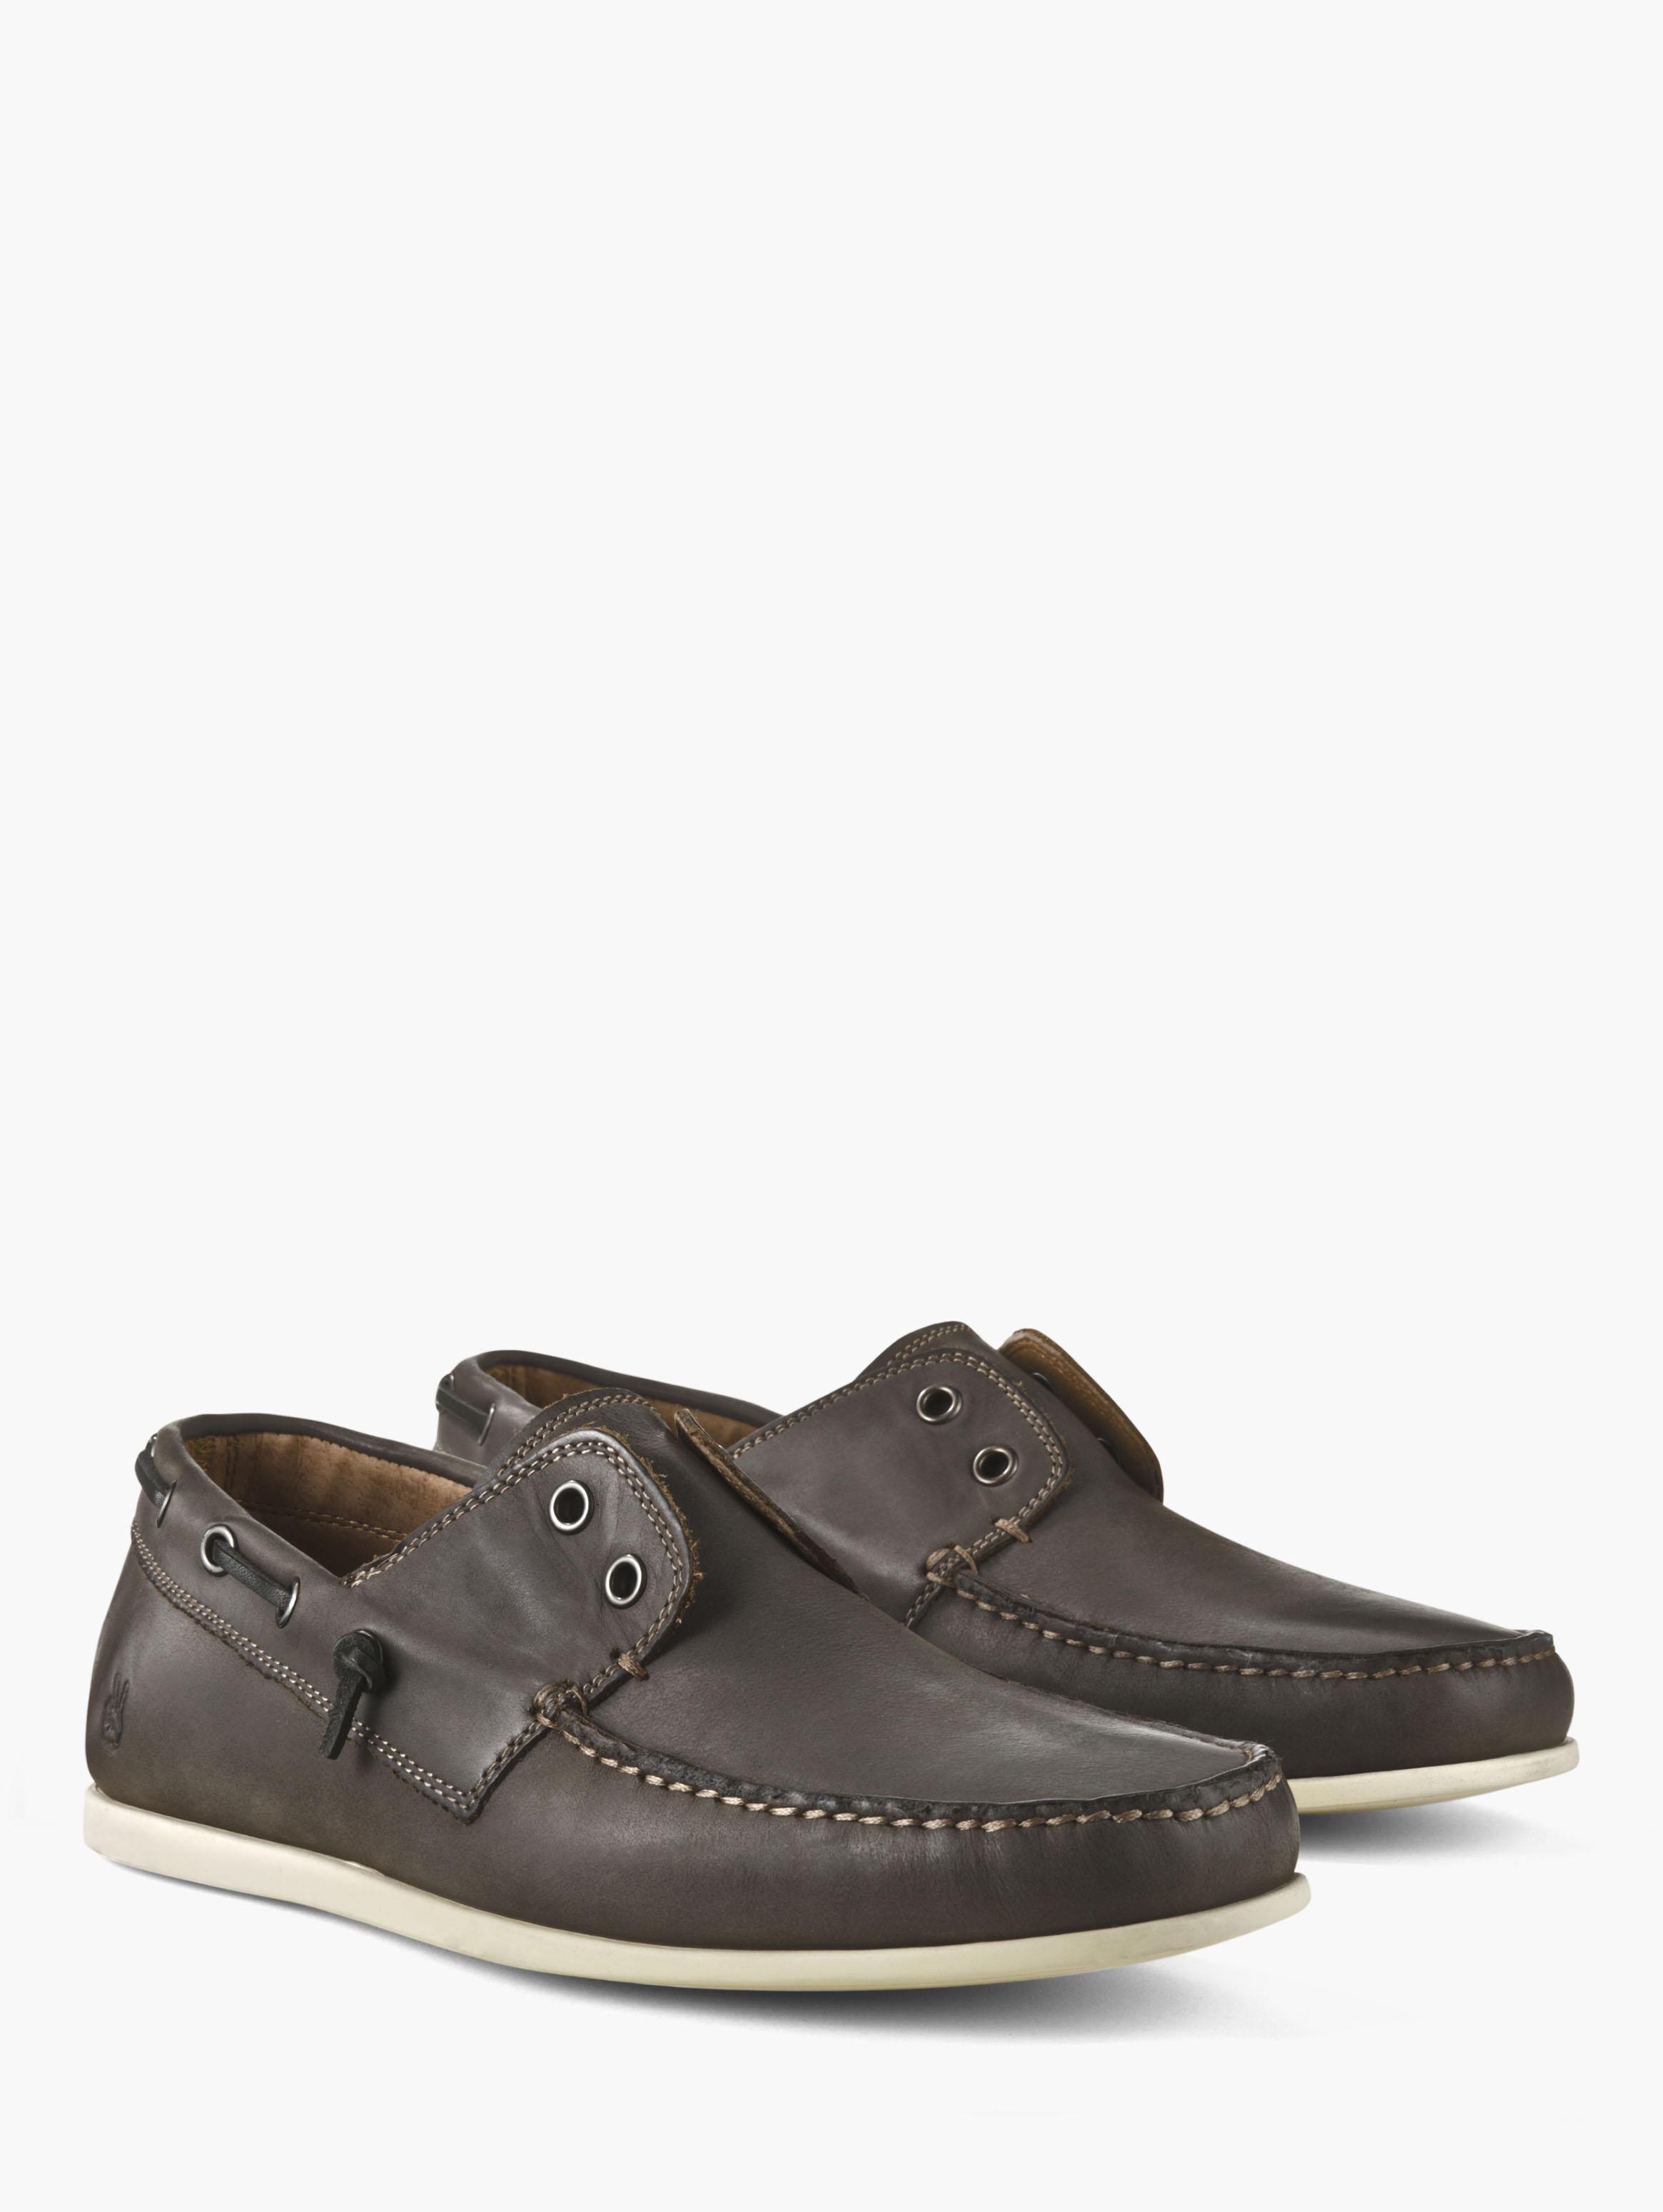 John Varvatos Shoes John Varvatos Men S Shoes And